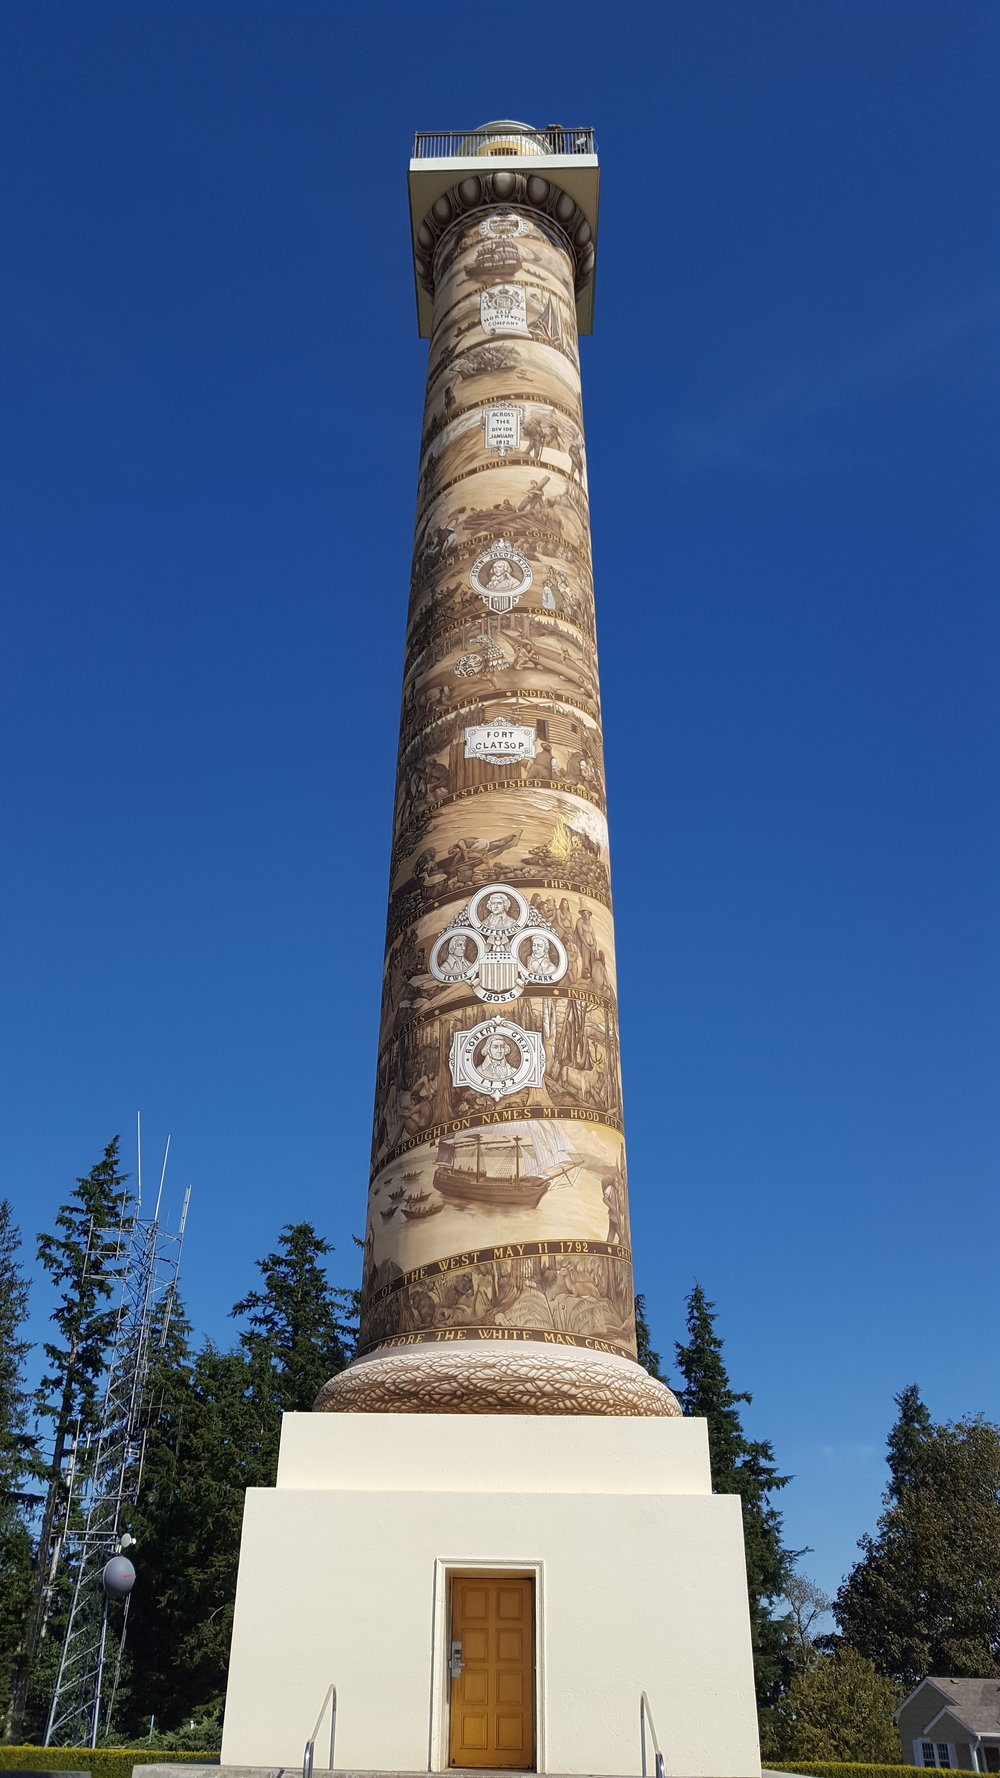 The Astoria Column - I climbed the stairs inside to the top and back down. Was sore for days afterwards. Good indicator that I need to work out more.